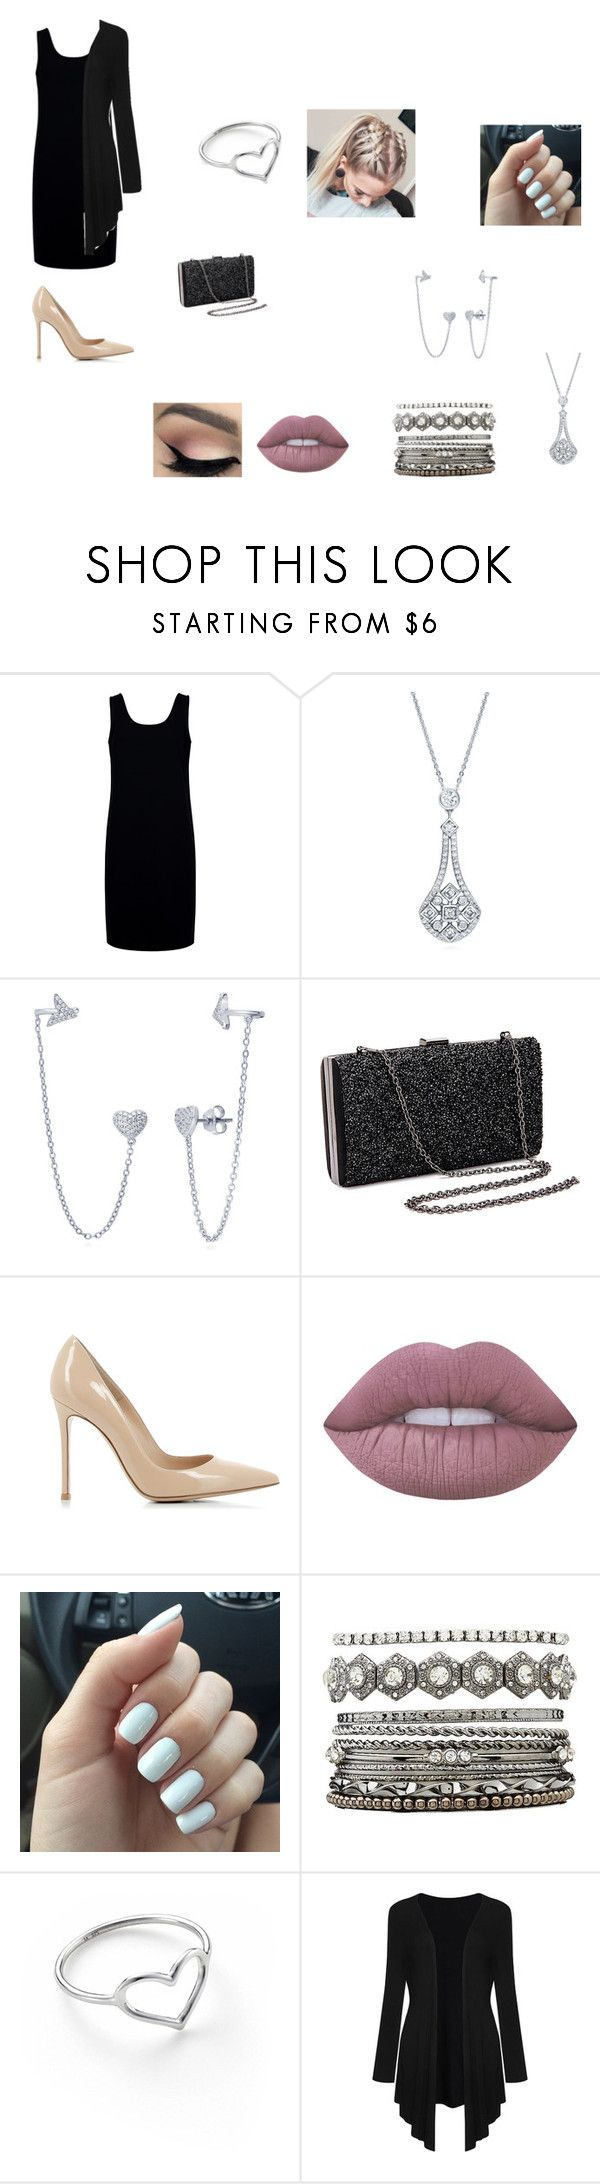 """Sunday best - Wednesday 2017-2018"" by diamond-heart2016 ❤ liked on Polyvore featuring Être Cécile, BERRICLE, Gianvito Rossi, Lime Crime, Charlotte Russe, Jordan Askill and WithChic"